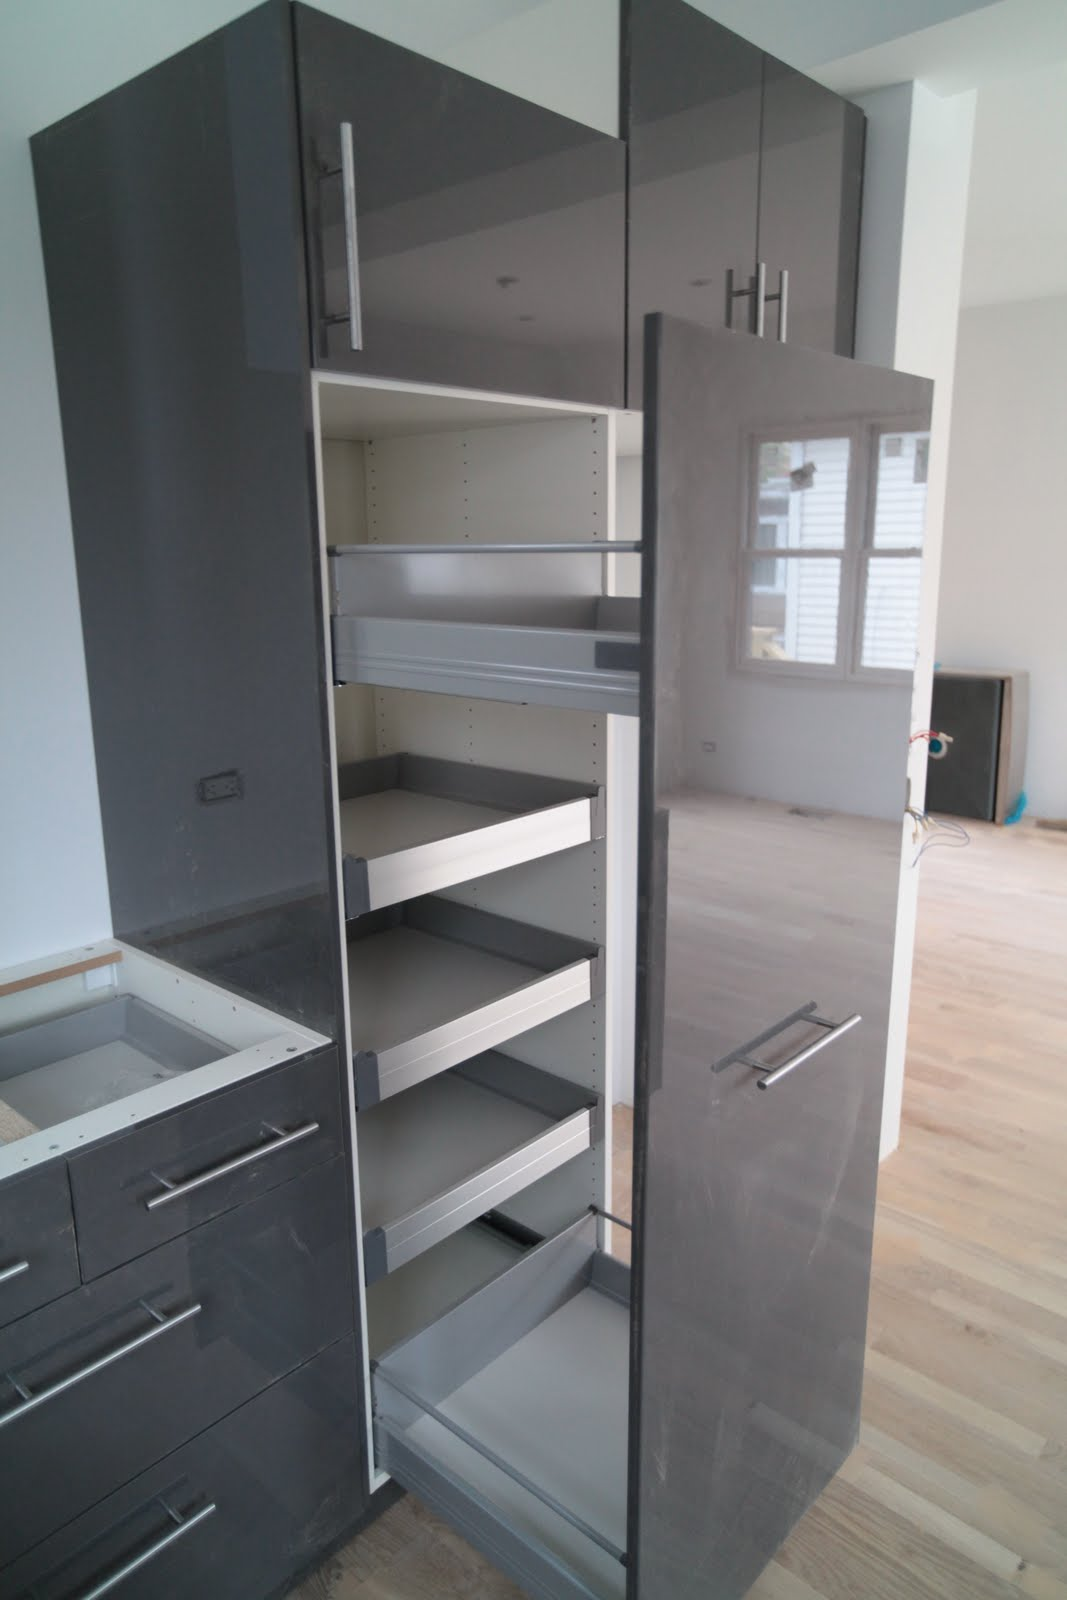 Kitchen pantry cabinet ikea - Pull Out Pantry Cabinet Ikea With Glutton For Punishment Kitchen Cabinets And Garage Foundations With